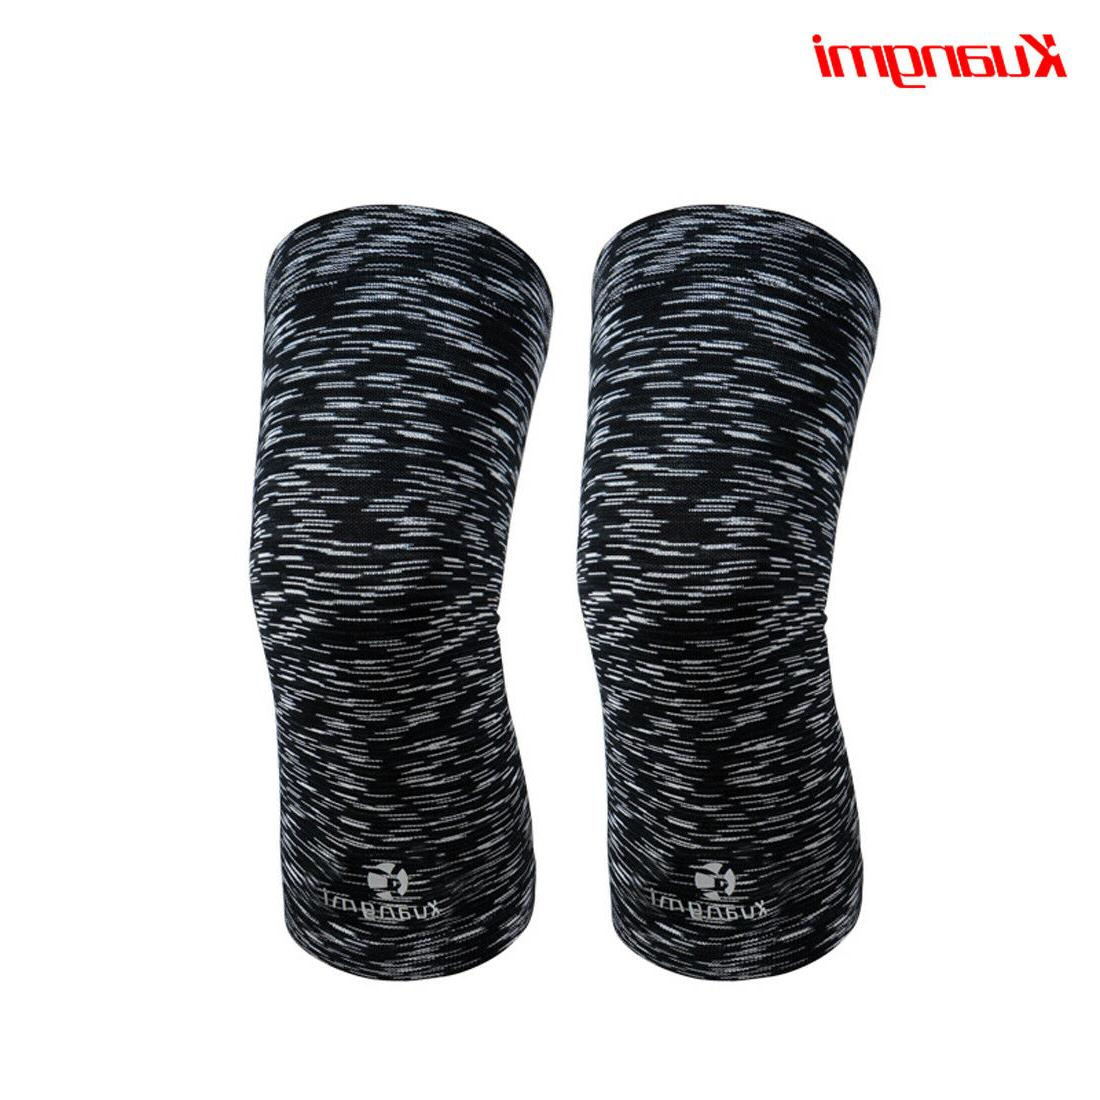 knee brace compression sleeve support guard protector